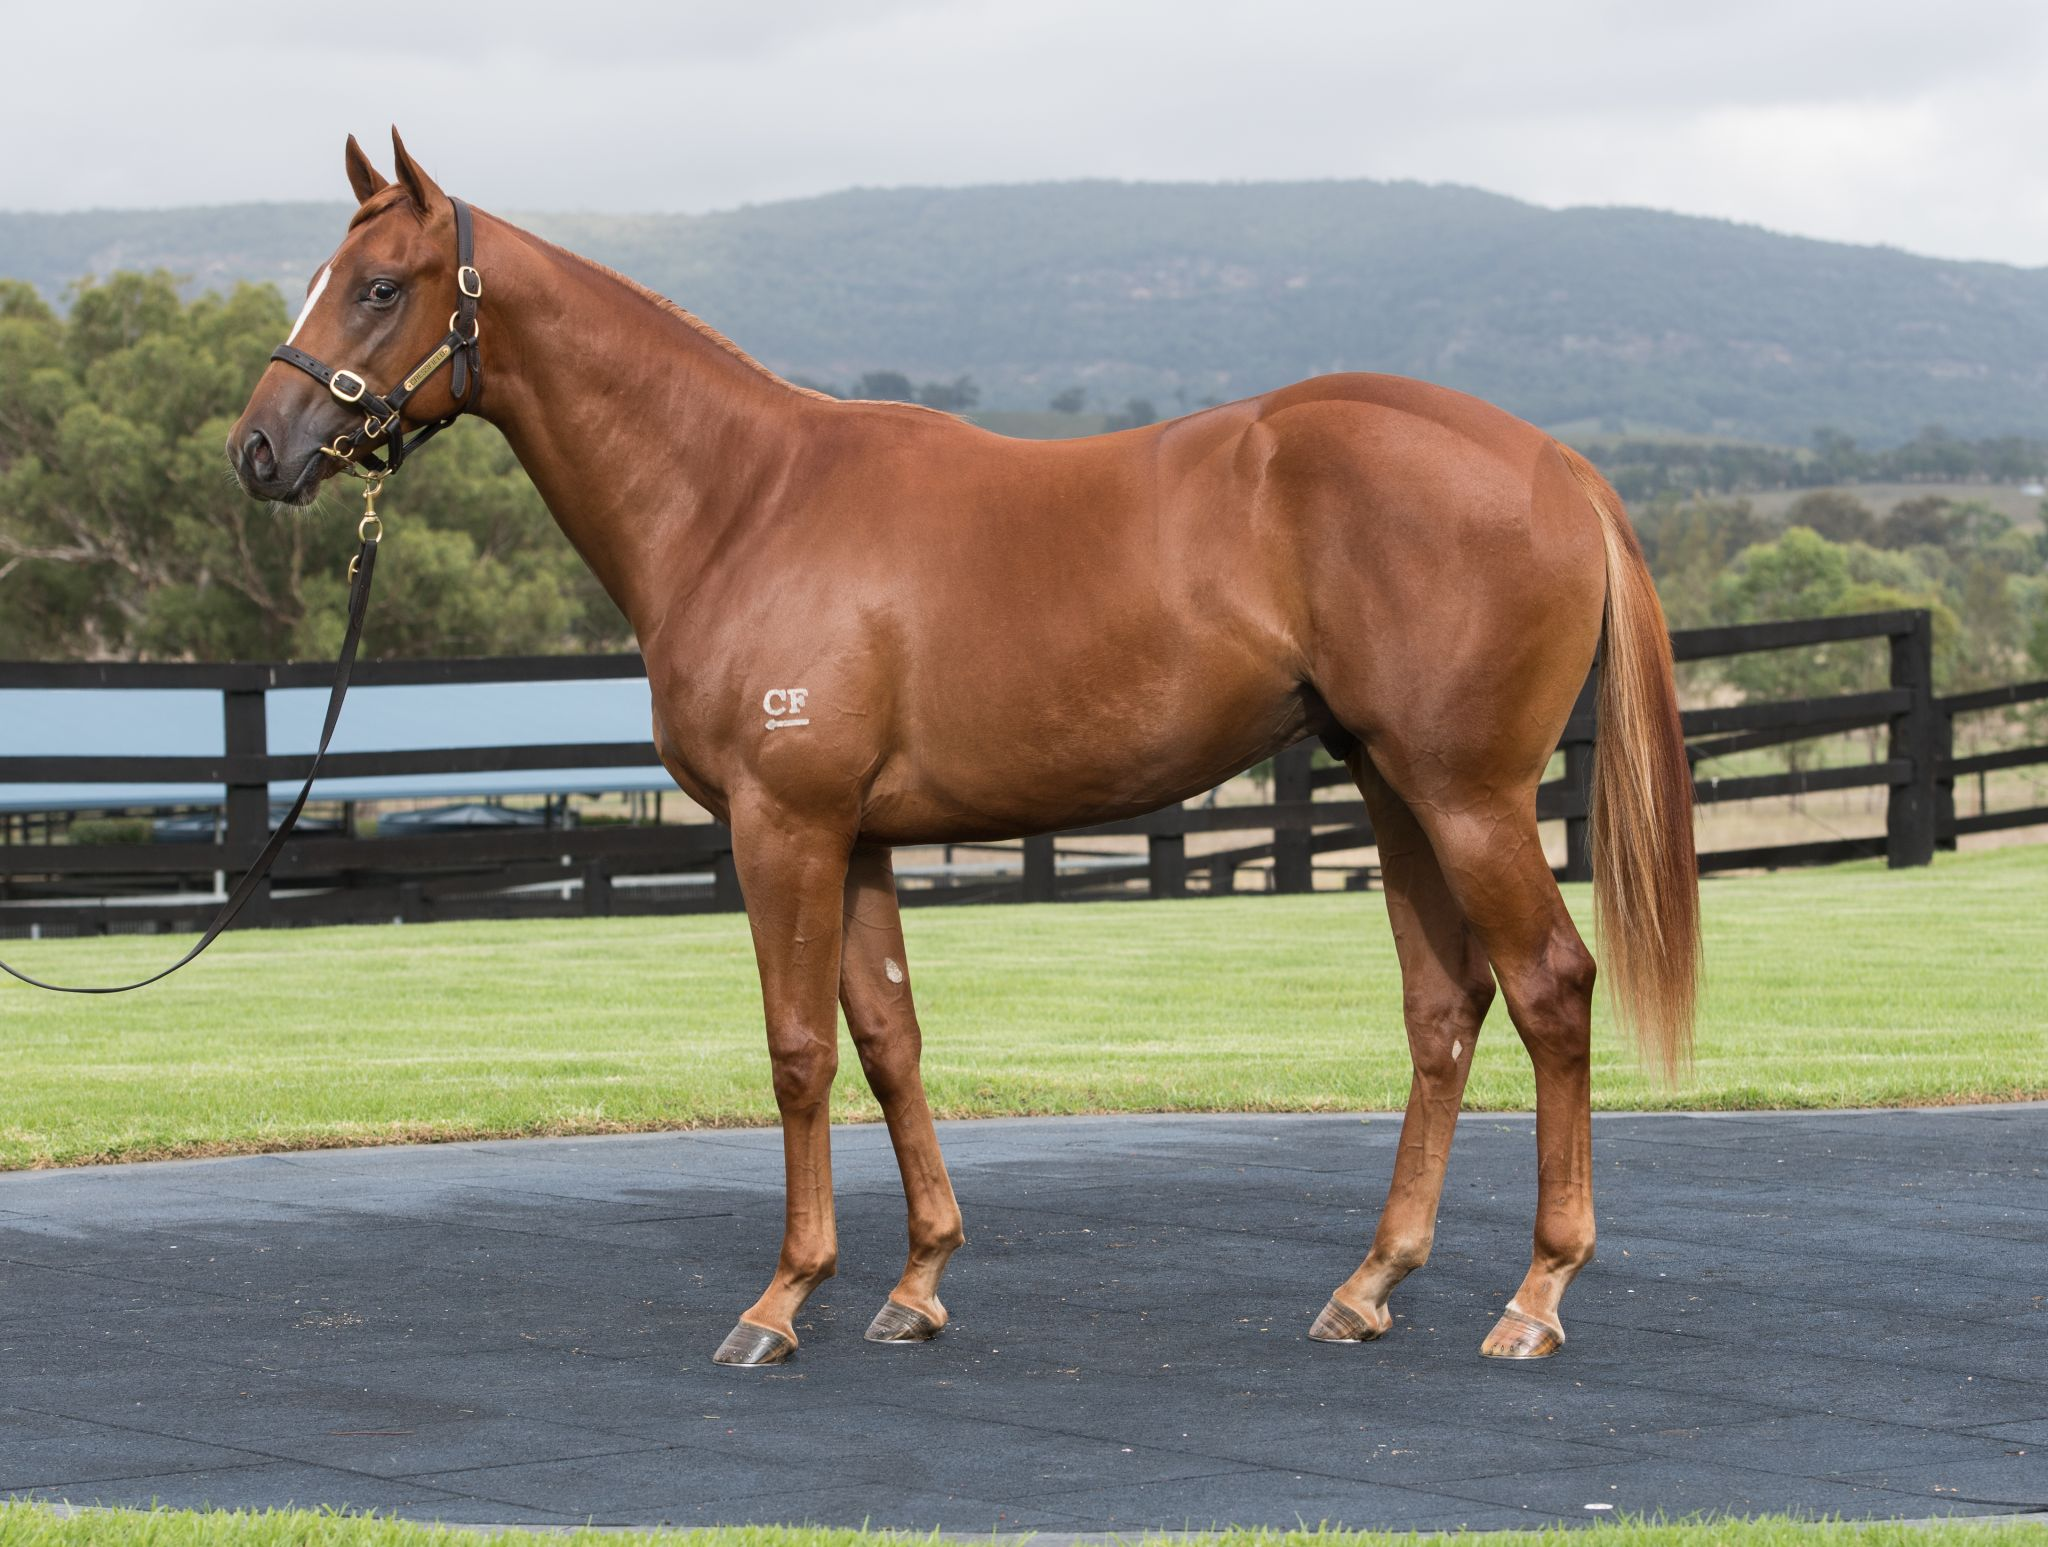 Lot 358: Exceed And Excel x Snowdrift colt - Cressfield Stud